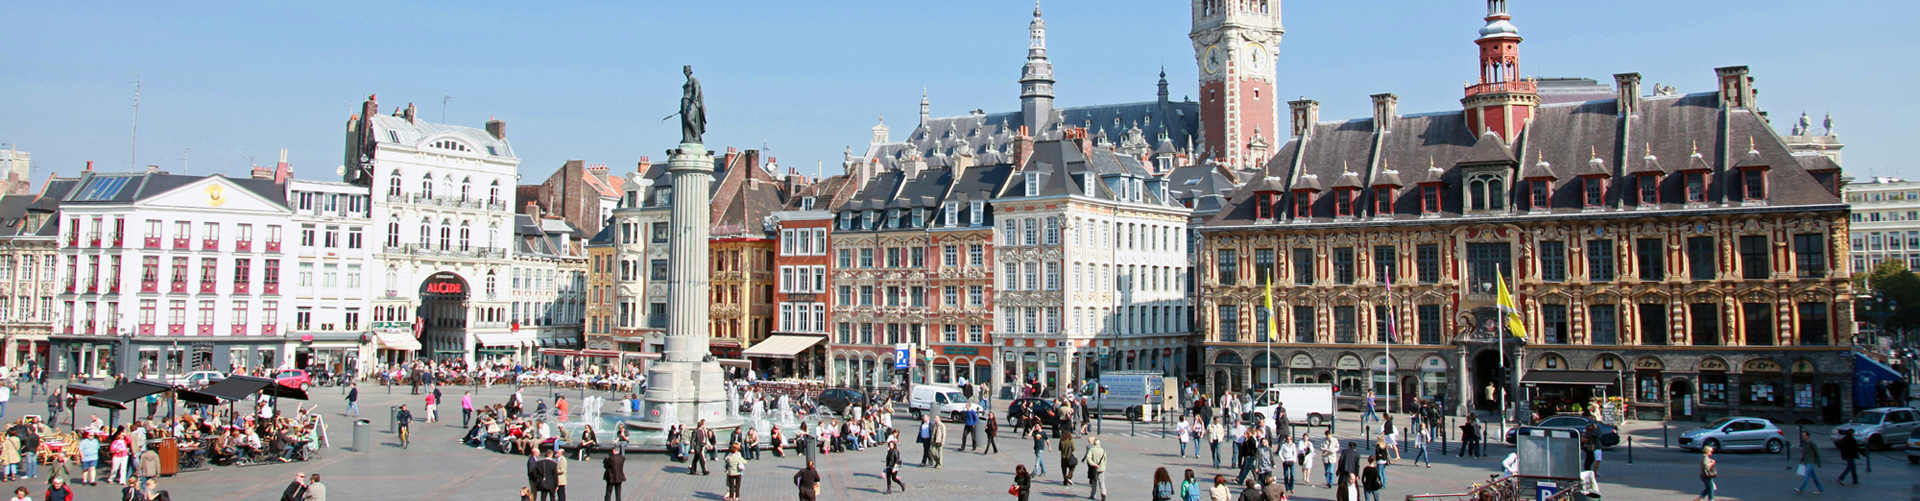 Hotels in lille france for wmsg 2012 imsa for Hotels lille